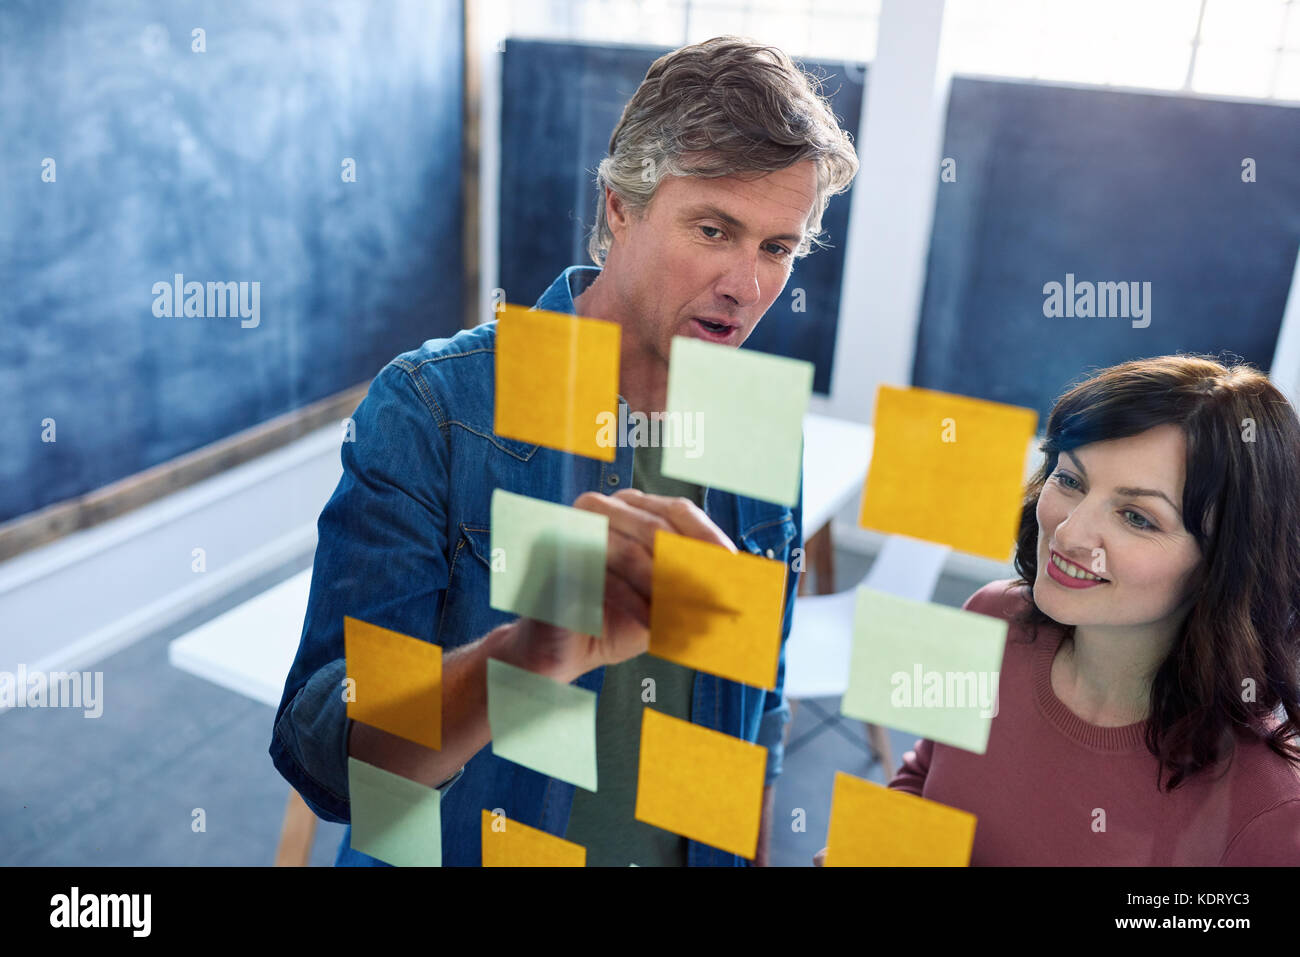 Smiling coworkers brainstorming on a glass wall in an office - Stock Image